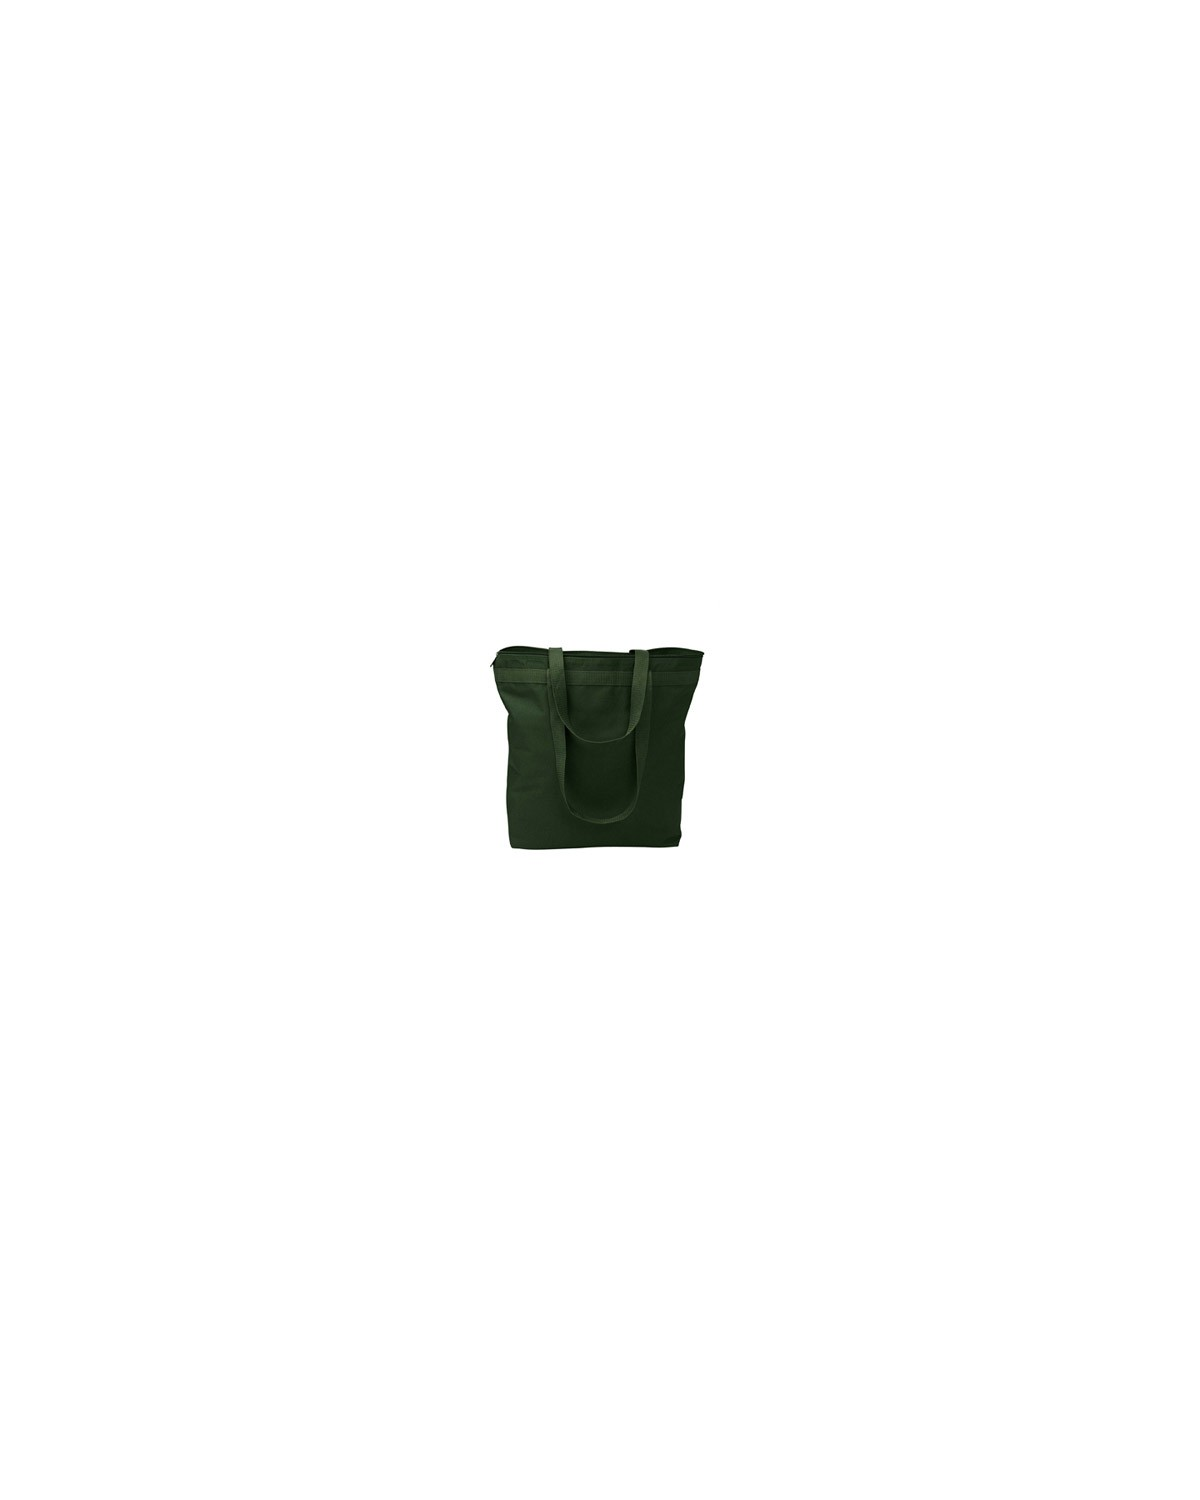 8802 Liberty Bags FOREST